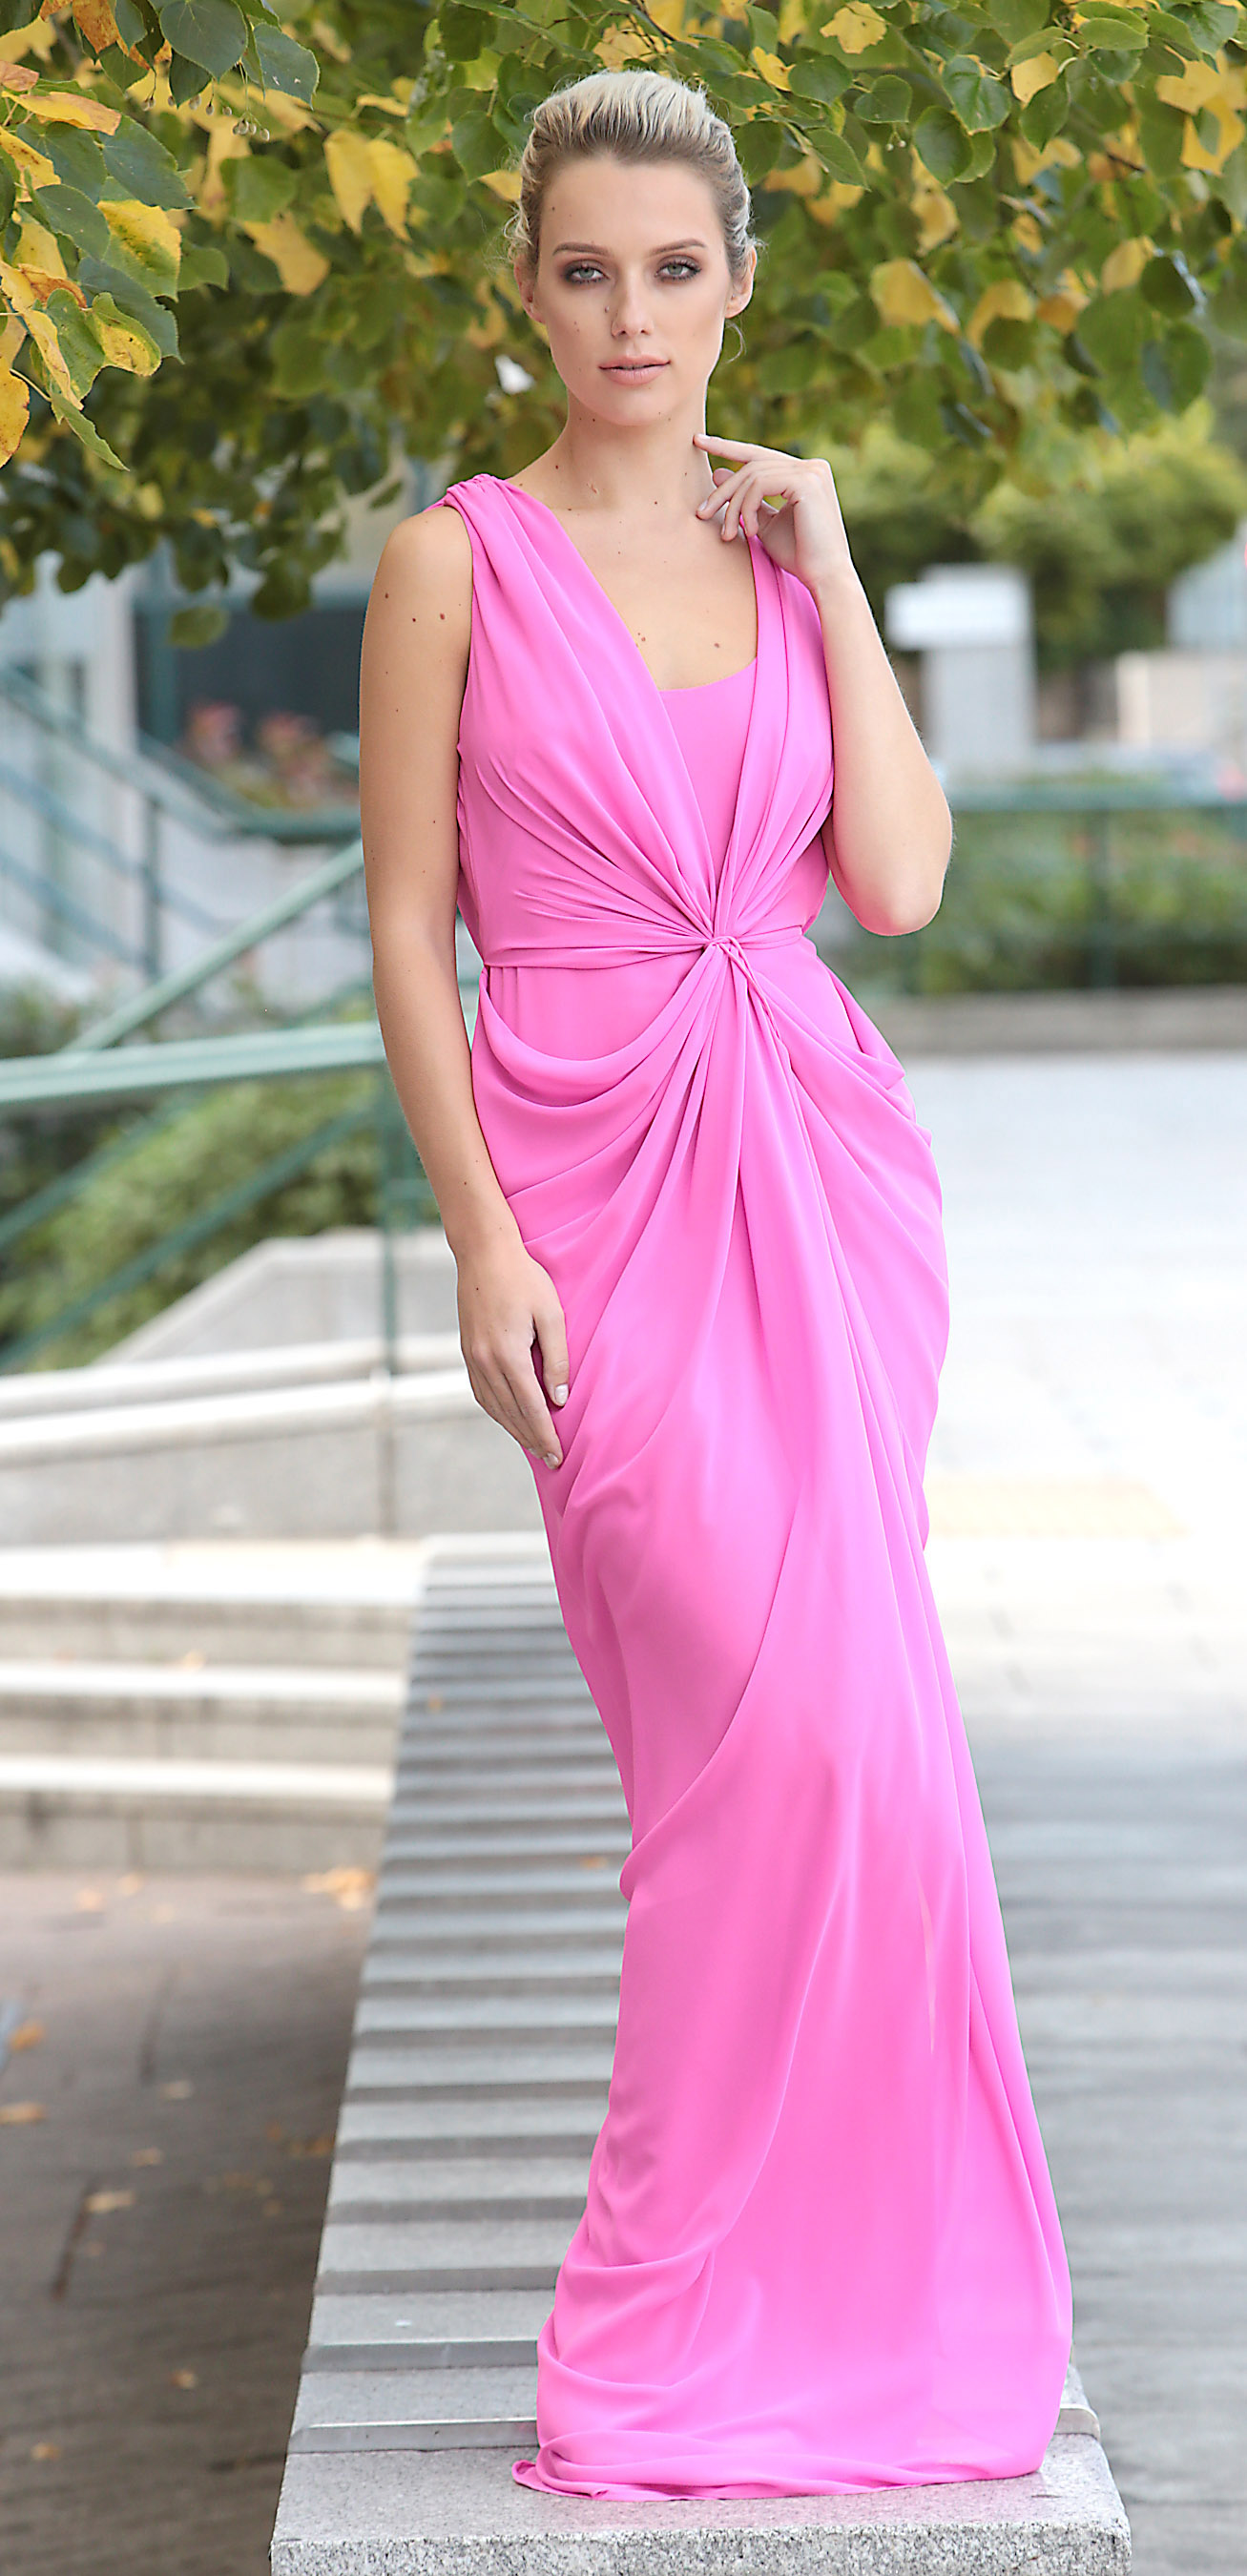 Model  Grace O'Mahony wearing a Umit Kutluk Pink chiffon draped full length dress €1,245 at the launch of Irish Fashion Collective, hosted by Conrad Dublin, which will take place on Friday 13th October 2017  Picture Brian McEvoy No repro fee for one use . Top international designer Don O'Neill will join Deborah Veale  and other leading Irish designers including Louise Kennedy, Umit Kutluk, Helen Steele as they showcase their Autumn Winter 2017 Collections in aid of St Joseph's Shankill.  All funds raised will go to supporting Saint Joseph's Shankill's vision of creating Ireland's first Dementia village. Tickets priced €100 are available from www.saintjosephsshankill.ie or by calling 01 271 9204.